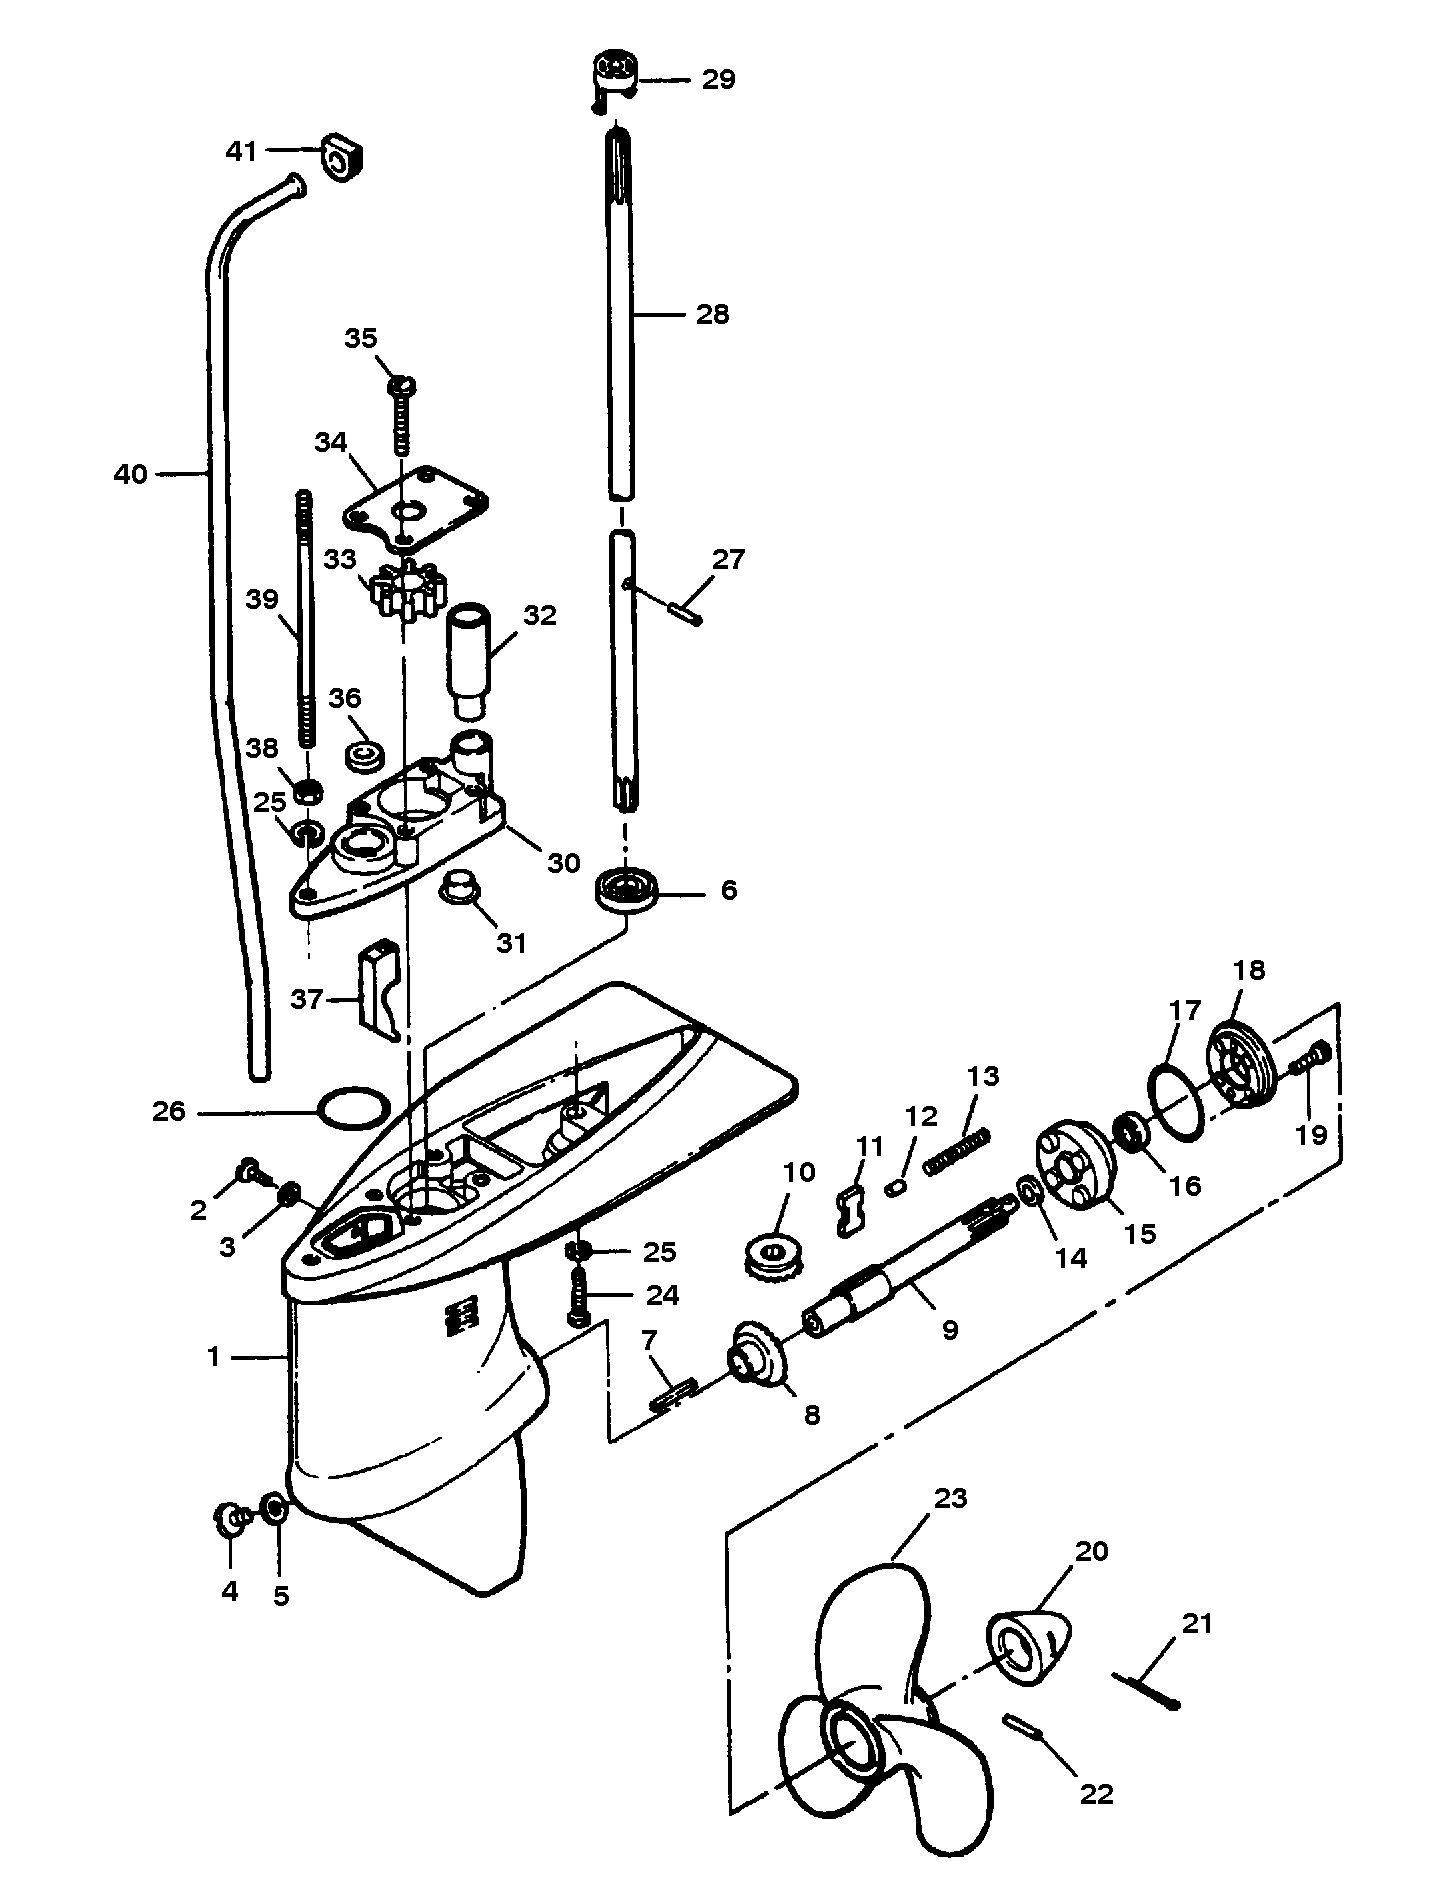 Motor Parts Gamefisher Outboard Motor Parts